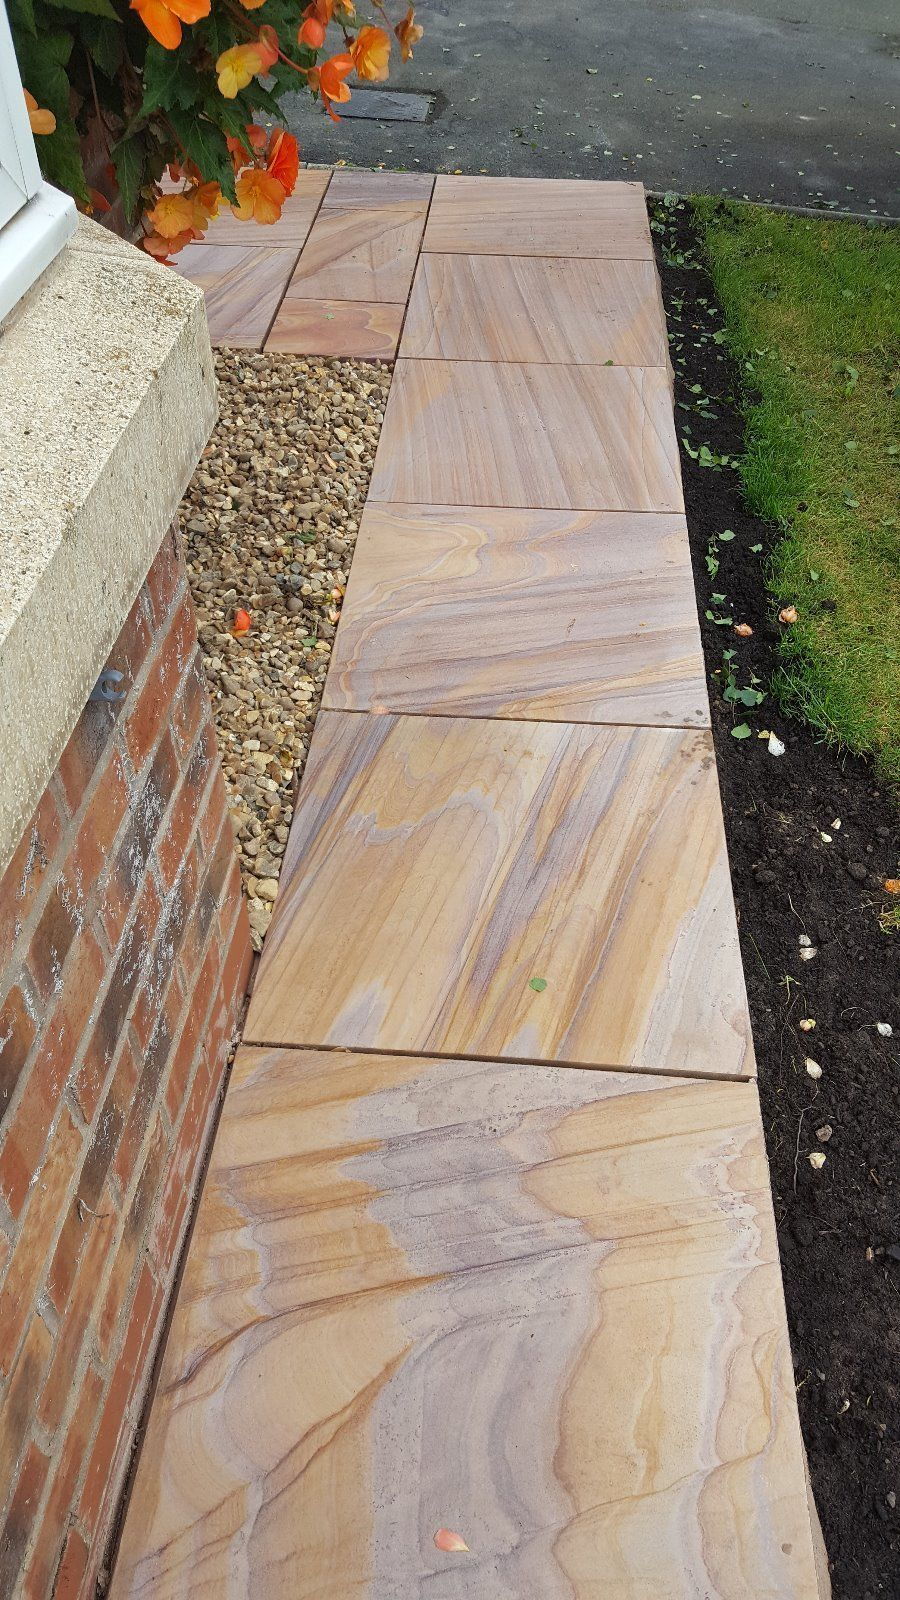 600 Msp 22 11 M2 Rainbow Smooth Sawn Sandstone Paving